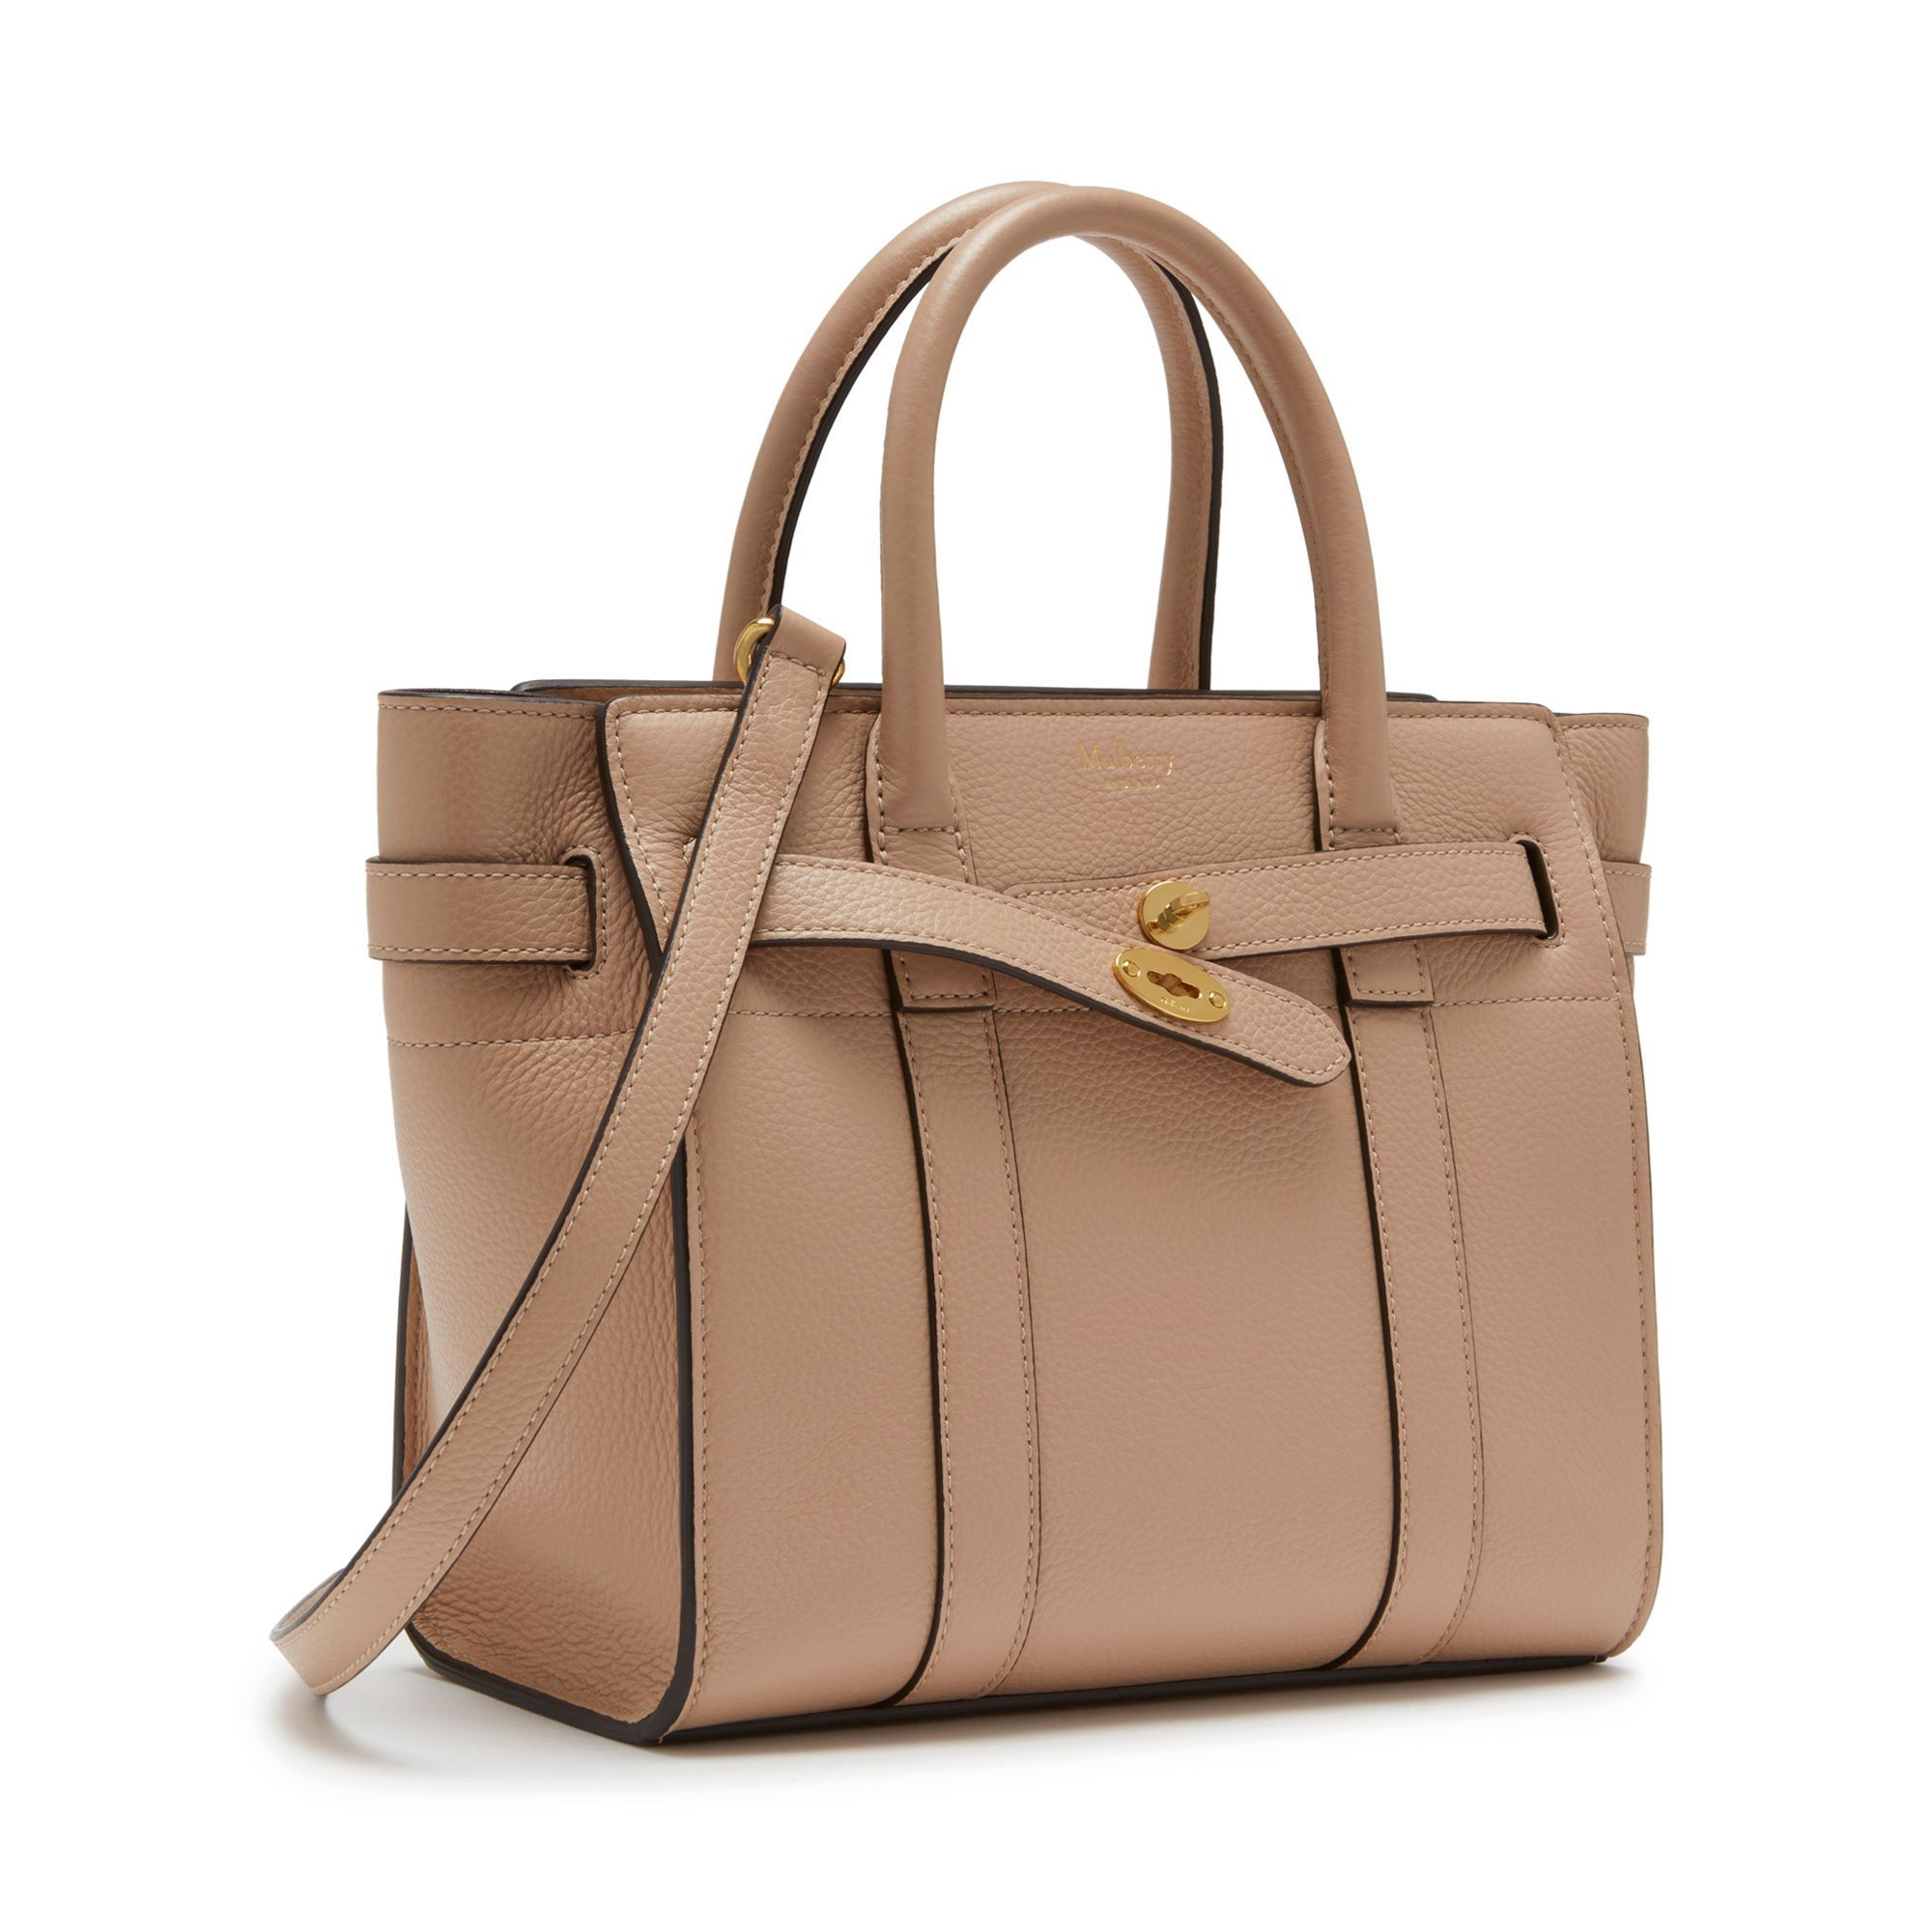 e1d04bada4 Shop the Rosewater Leather Mini Zipped Bayswater on Mulberry.com. A new  arrival for